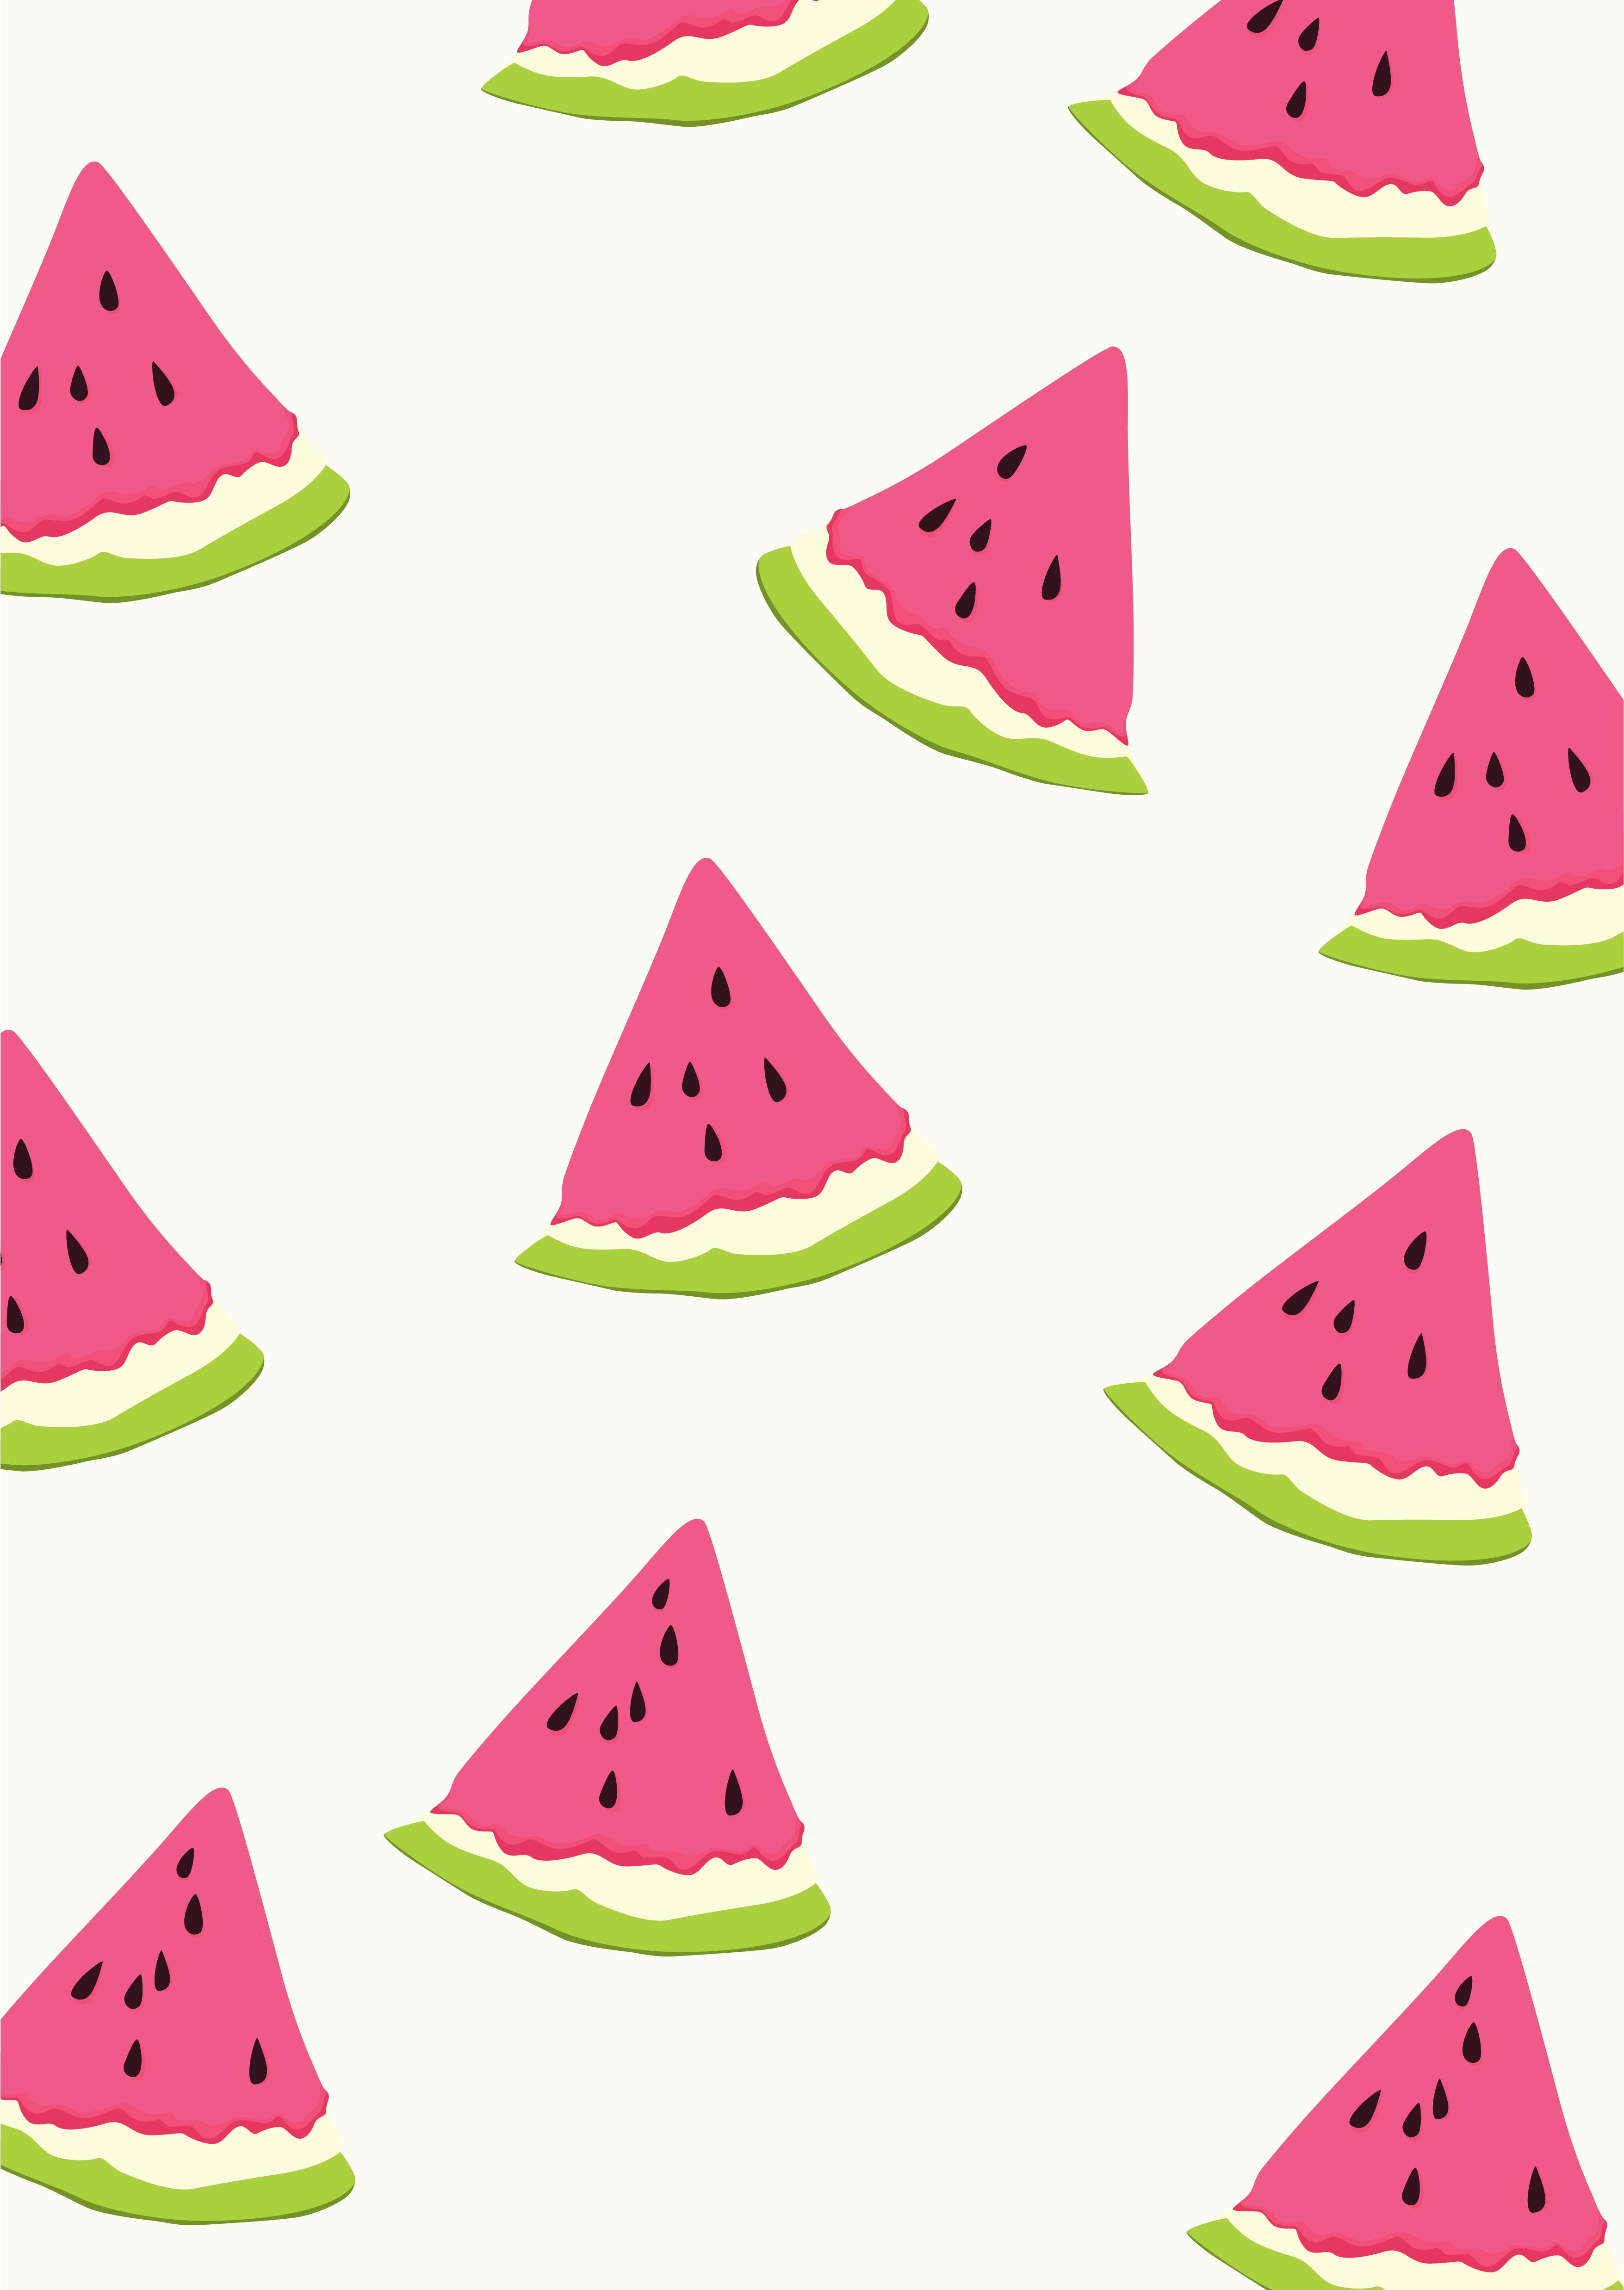 Sweet watermelon pattern art Watermelom pattern